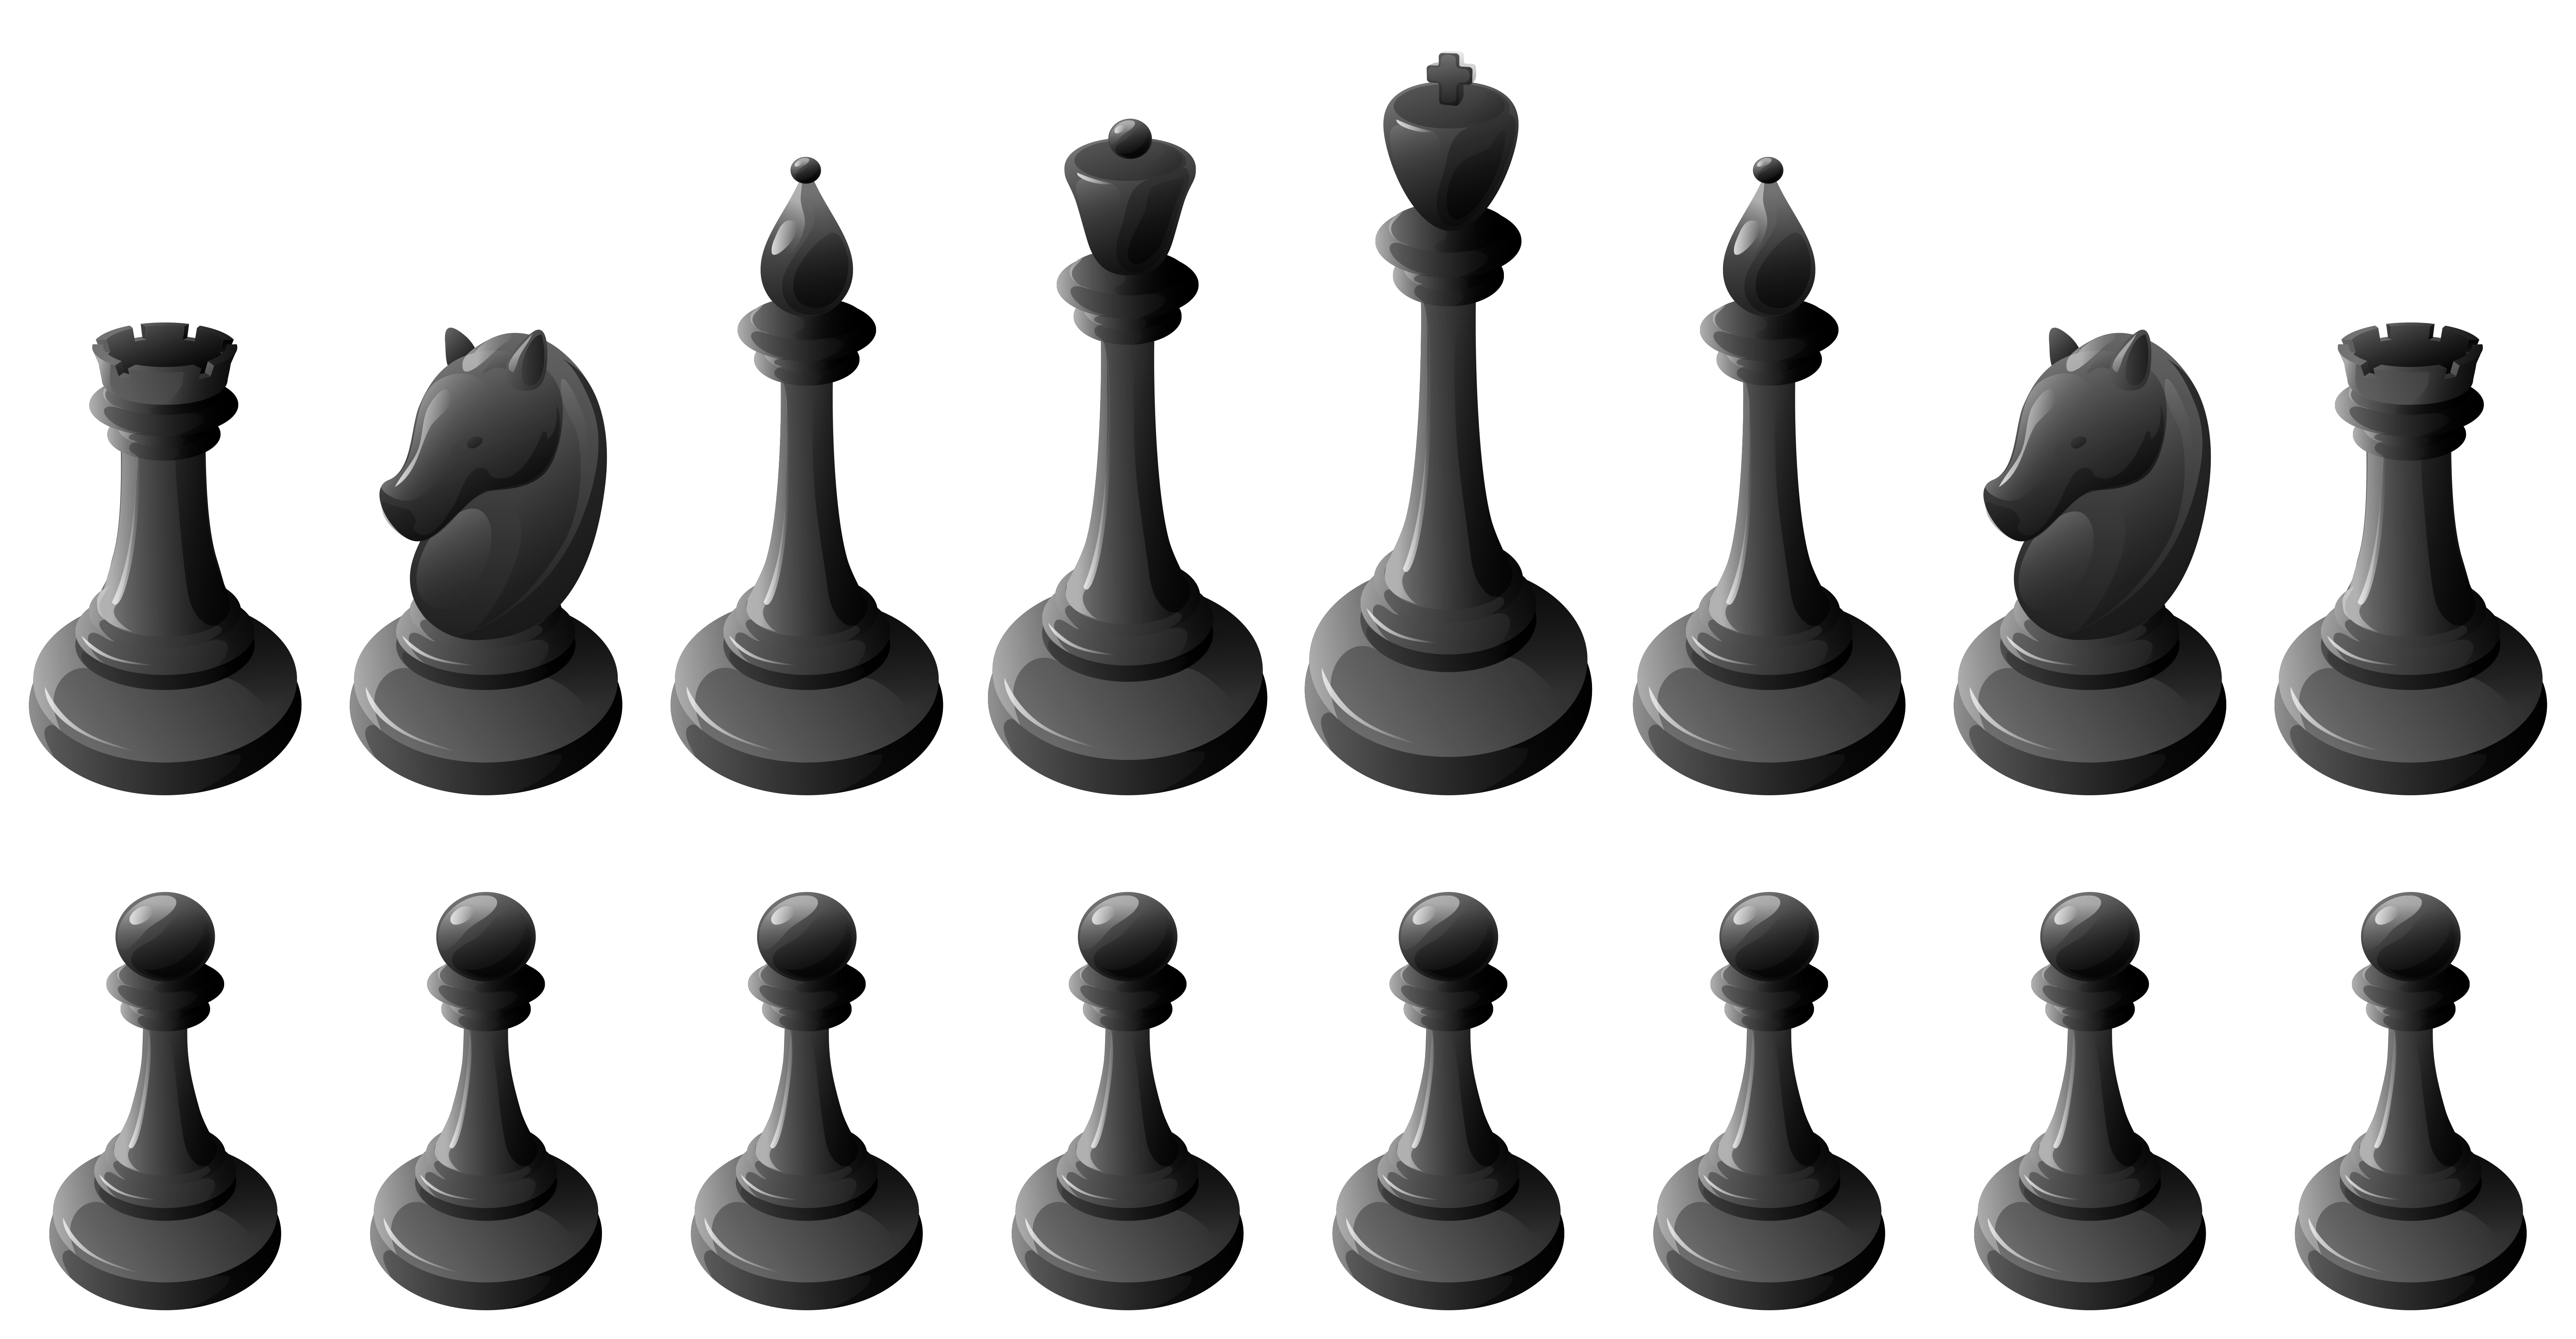 png library stock Black pieces png best. Chess clipart transparent.